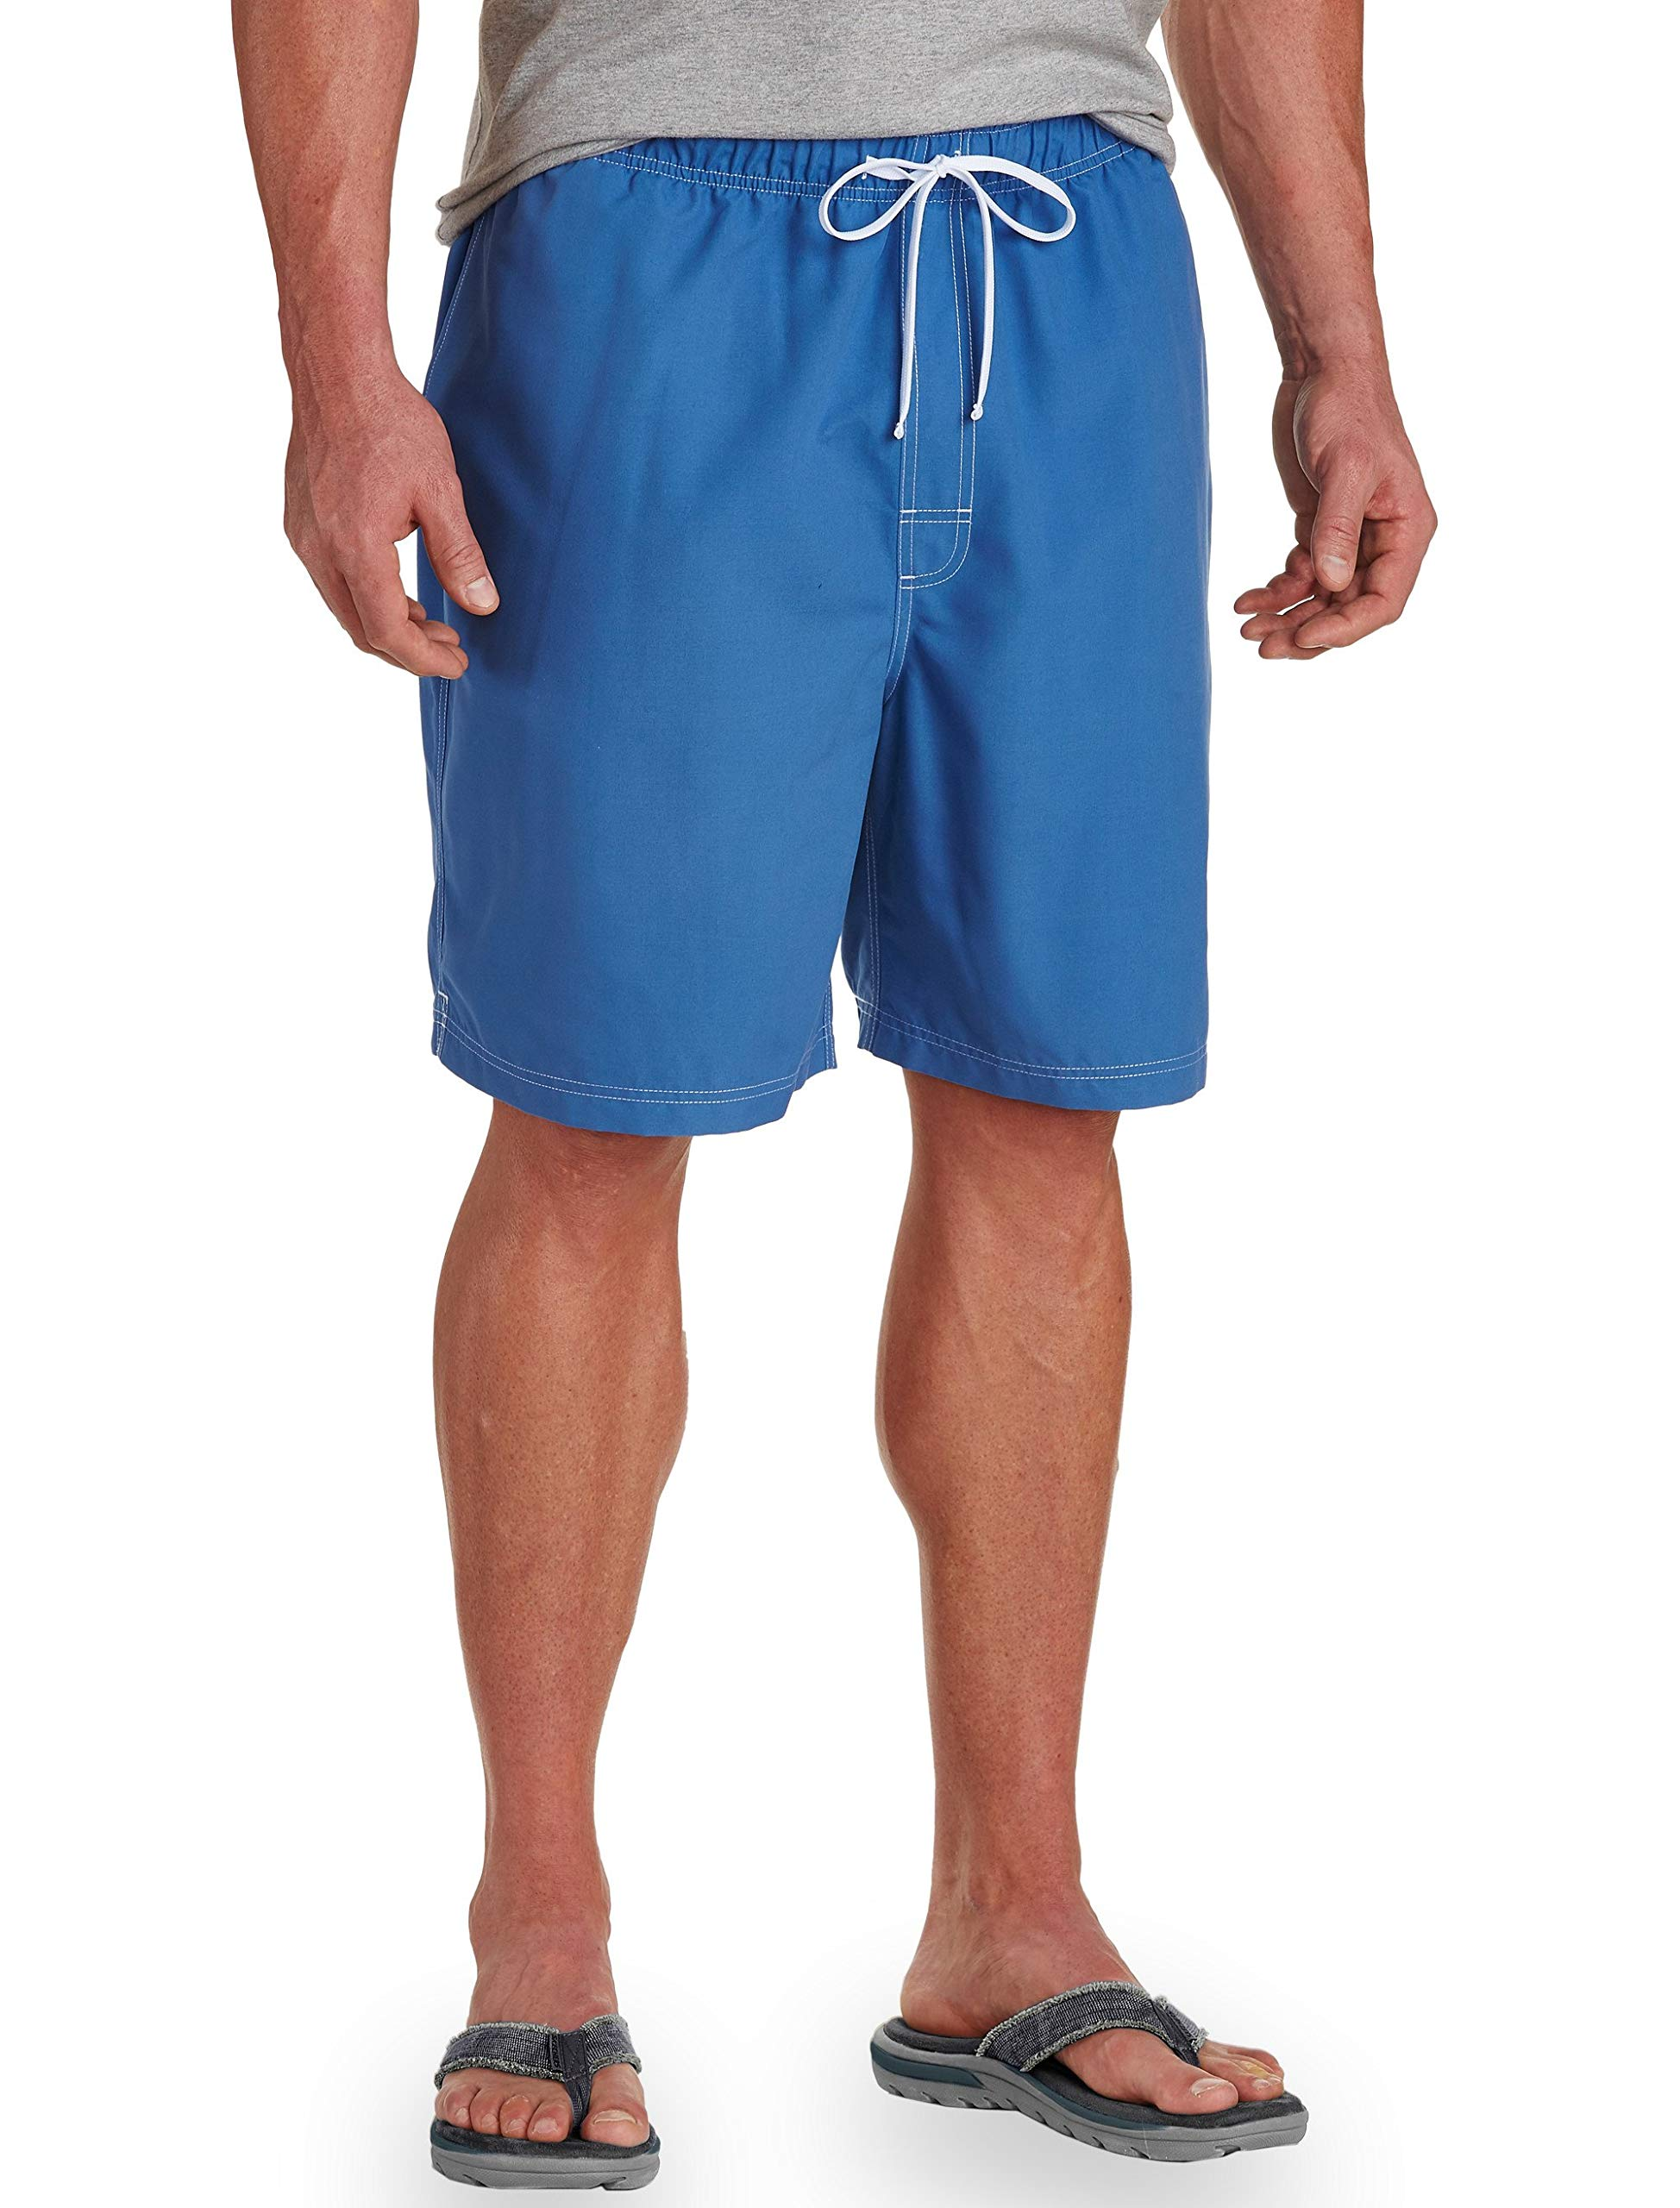 Harbor Bay by DXL Big and Tall Solid Microfiber Swim Trunks, Blue 3X by Harbor Bay